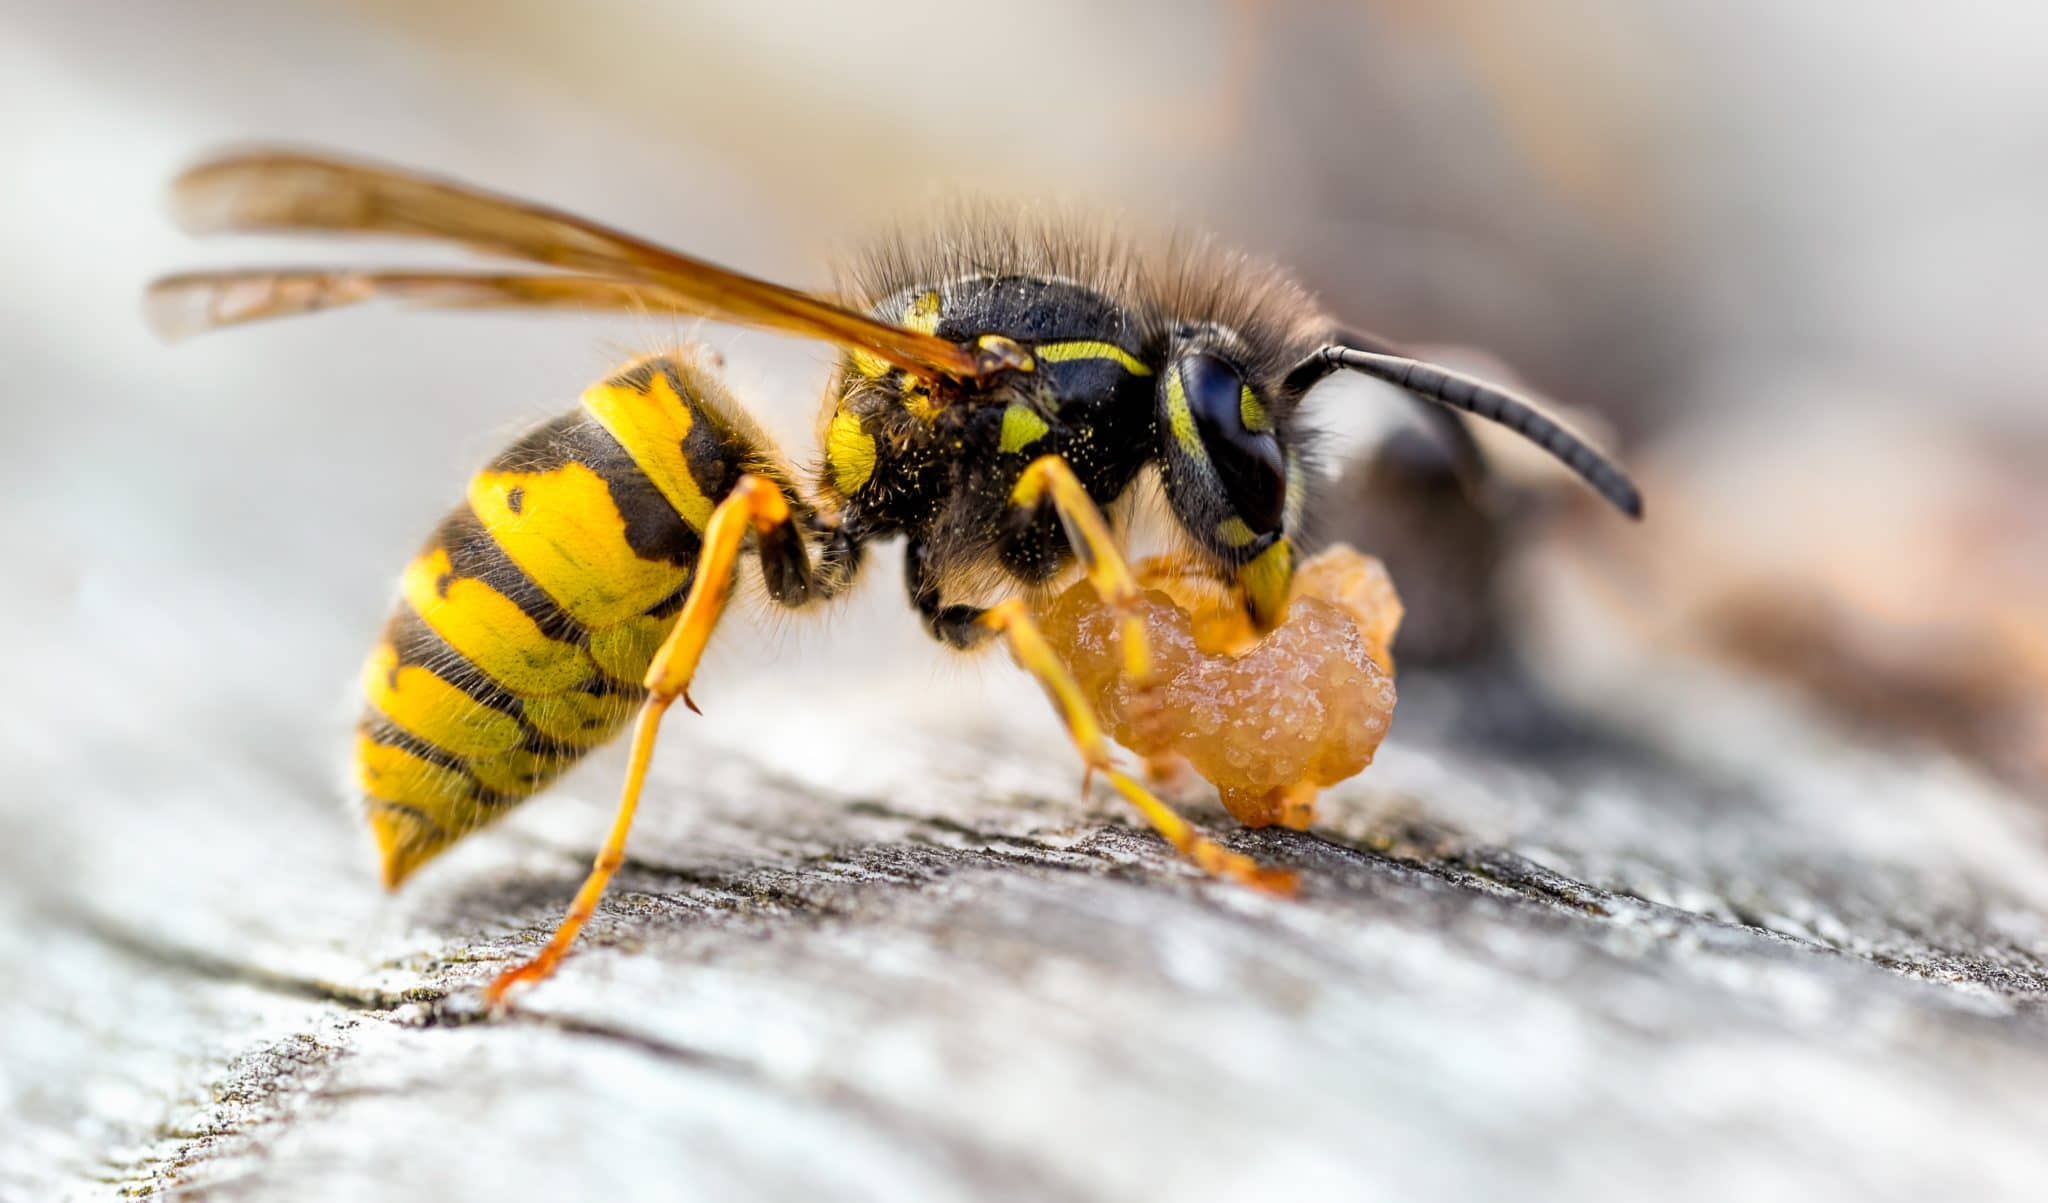 The Common yellow jacket eating